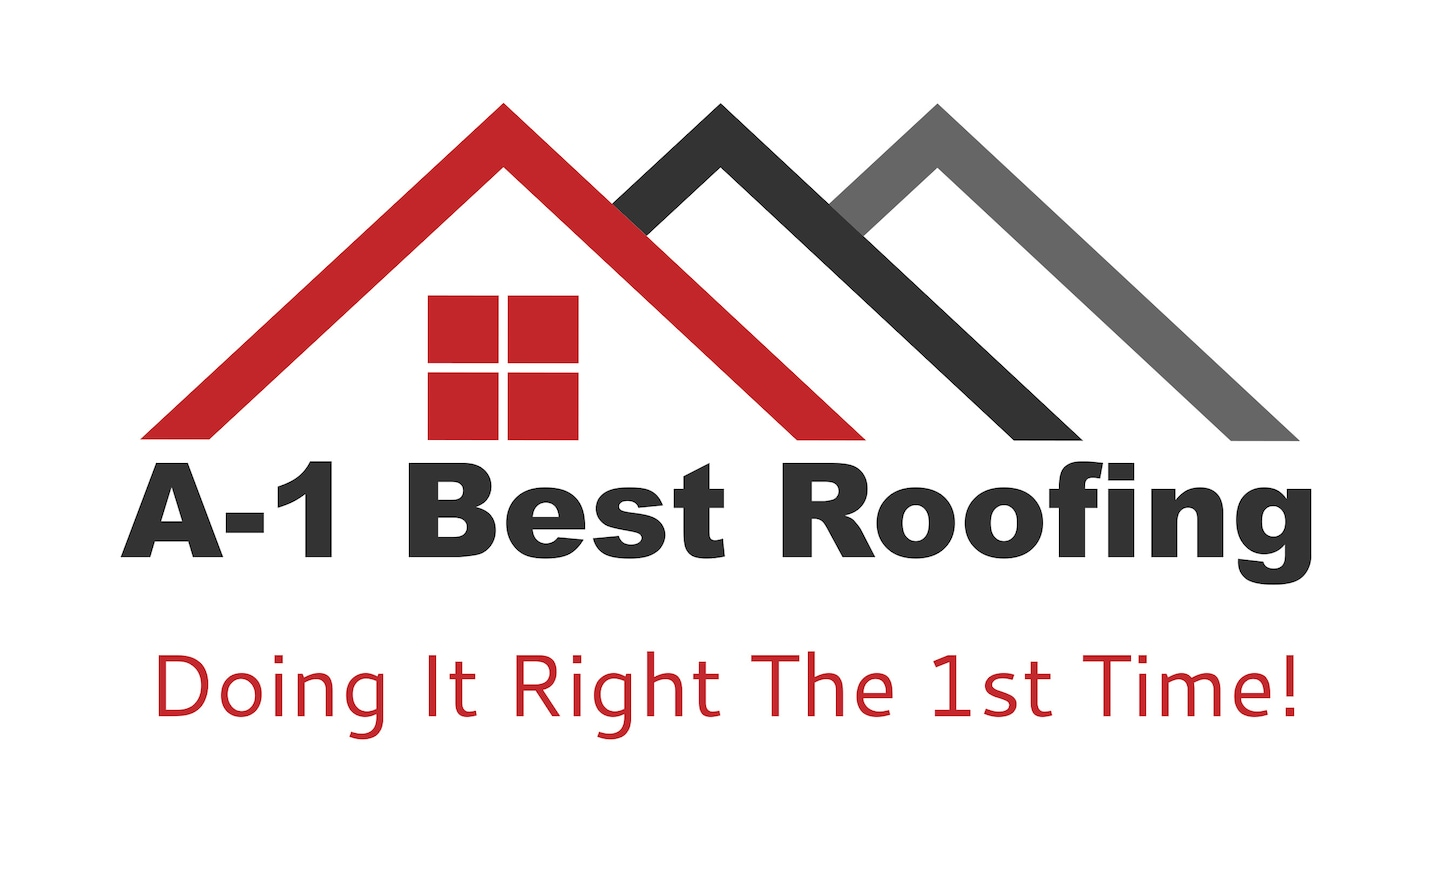 A1 Best Roofing